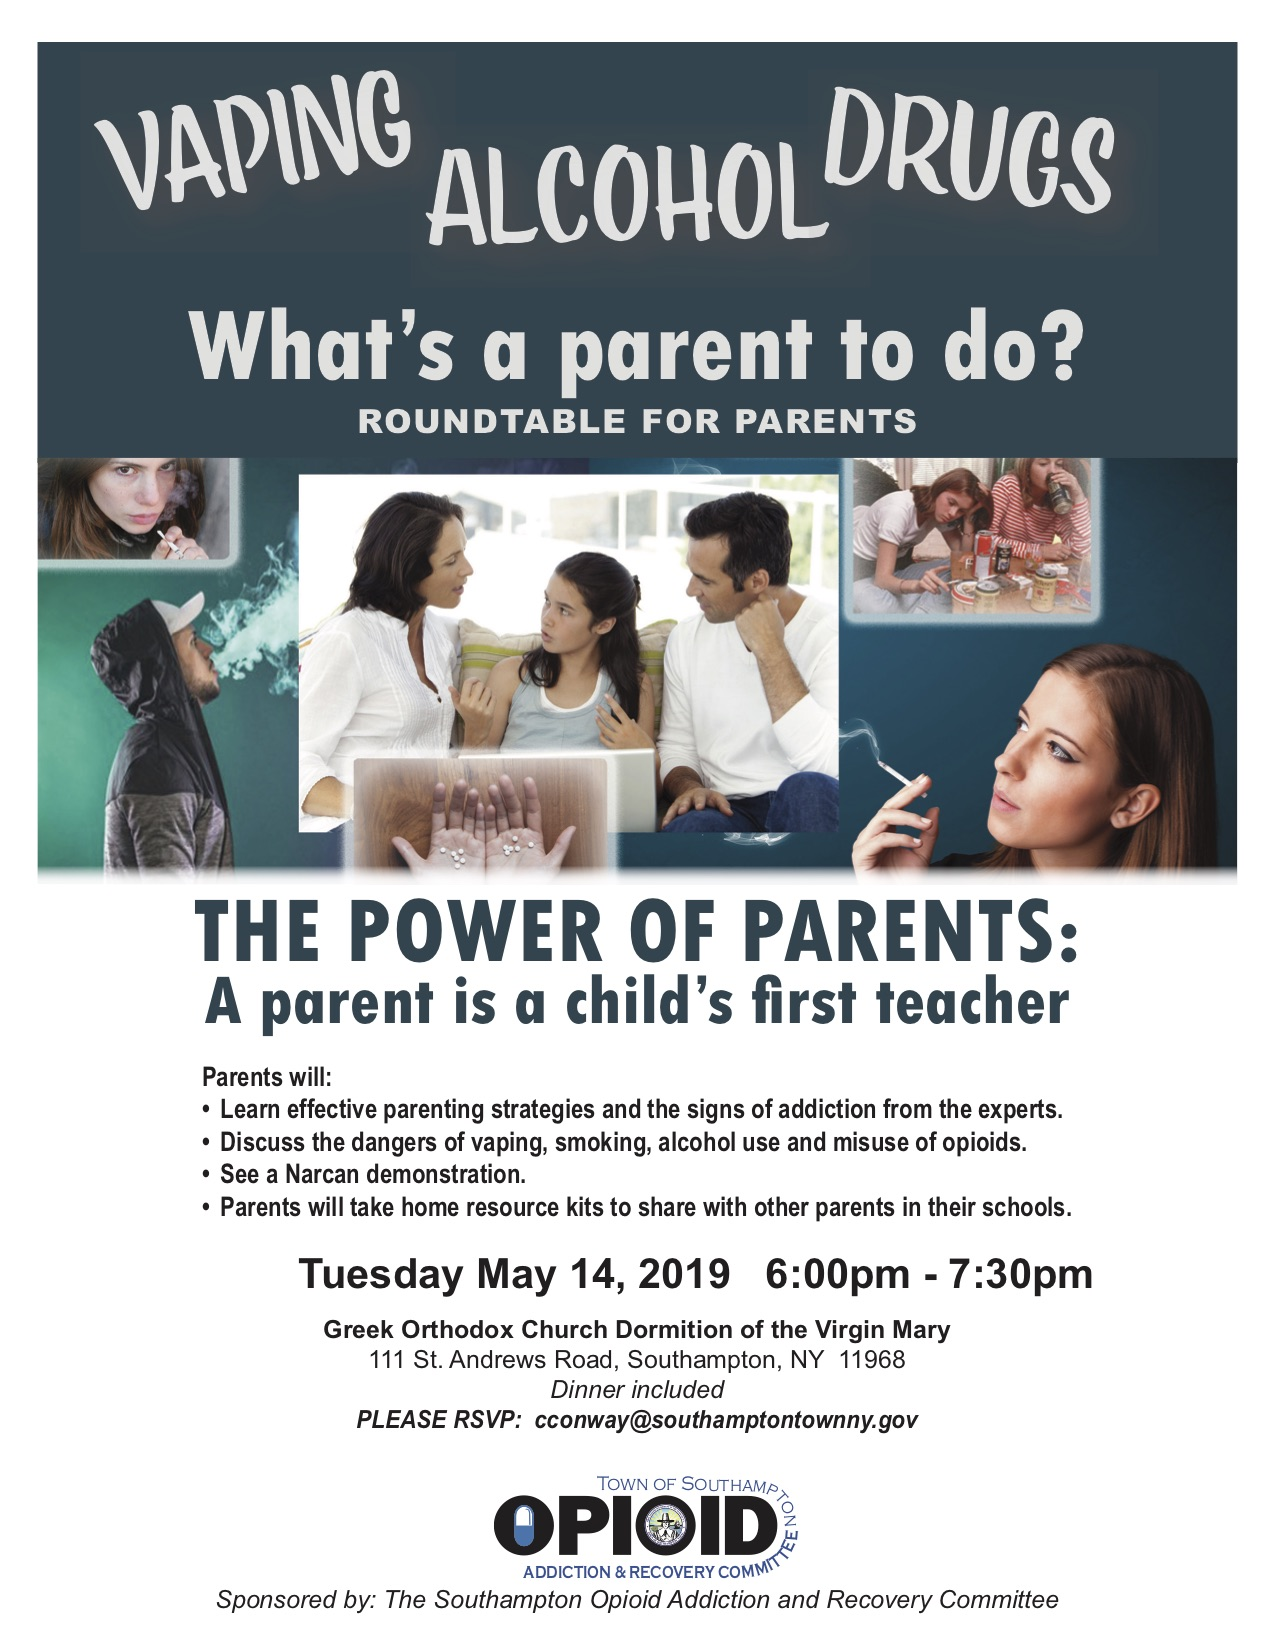 Opioid May 2019 Flyer Parent Roundtable.jpg